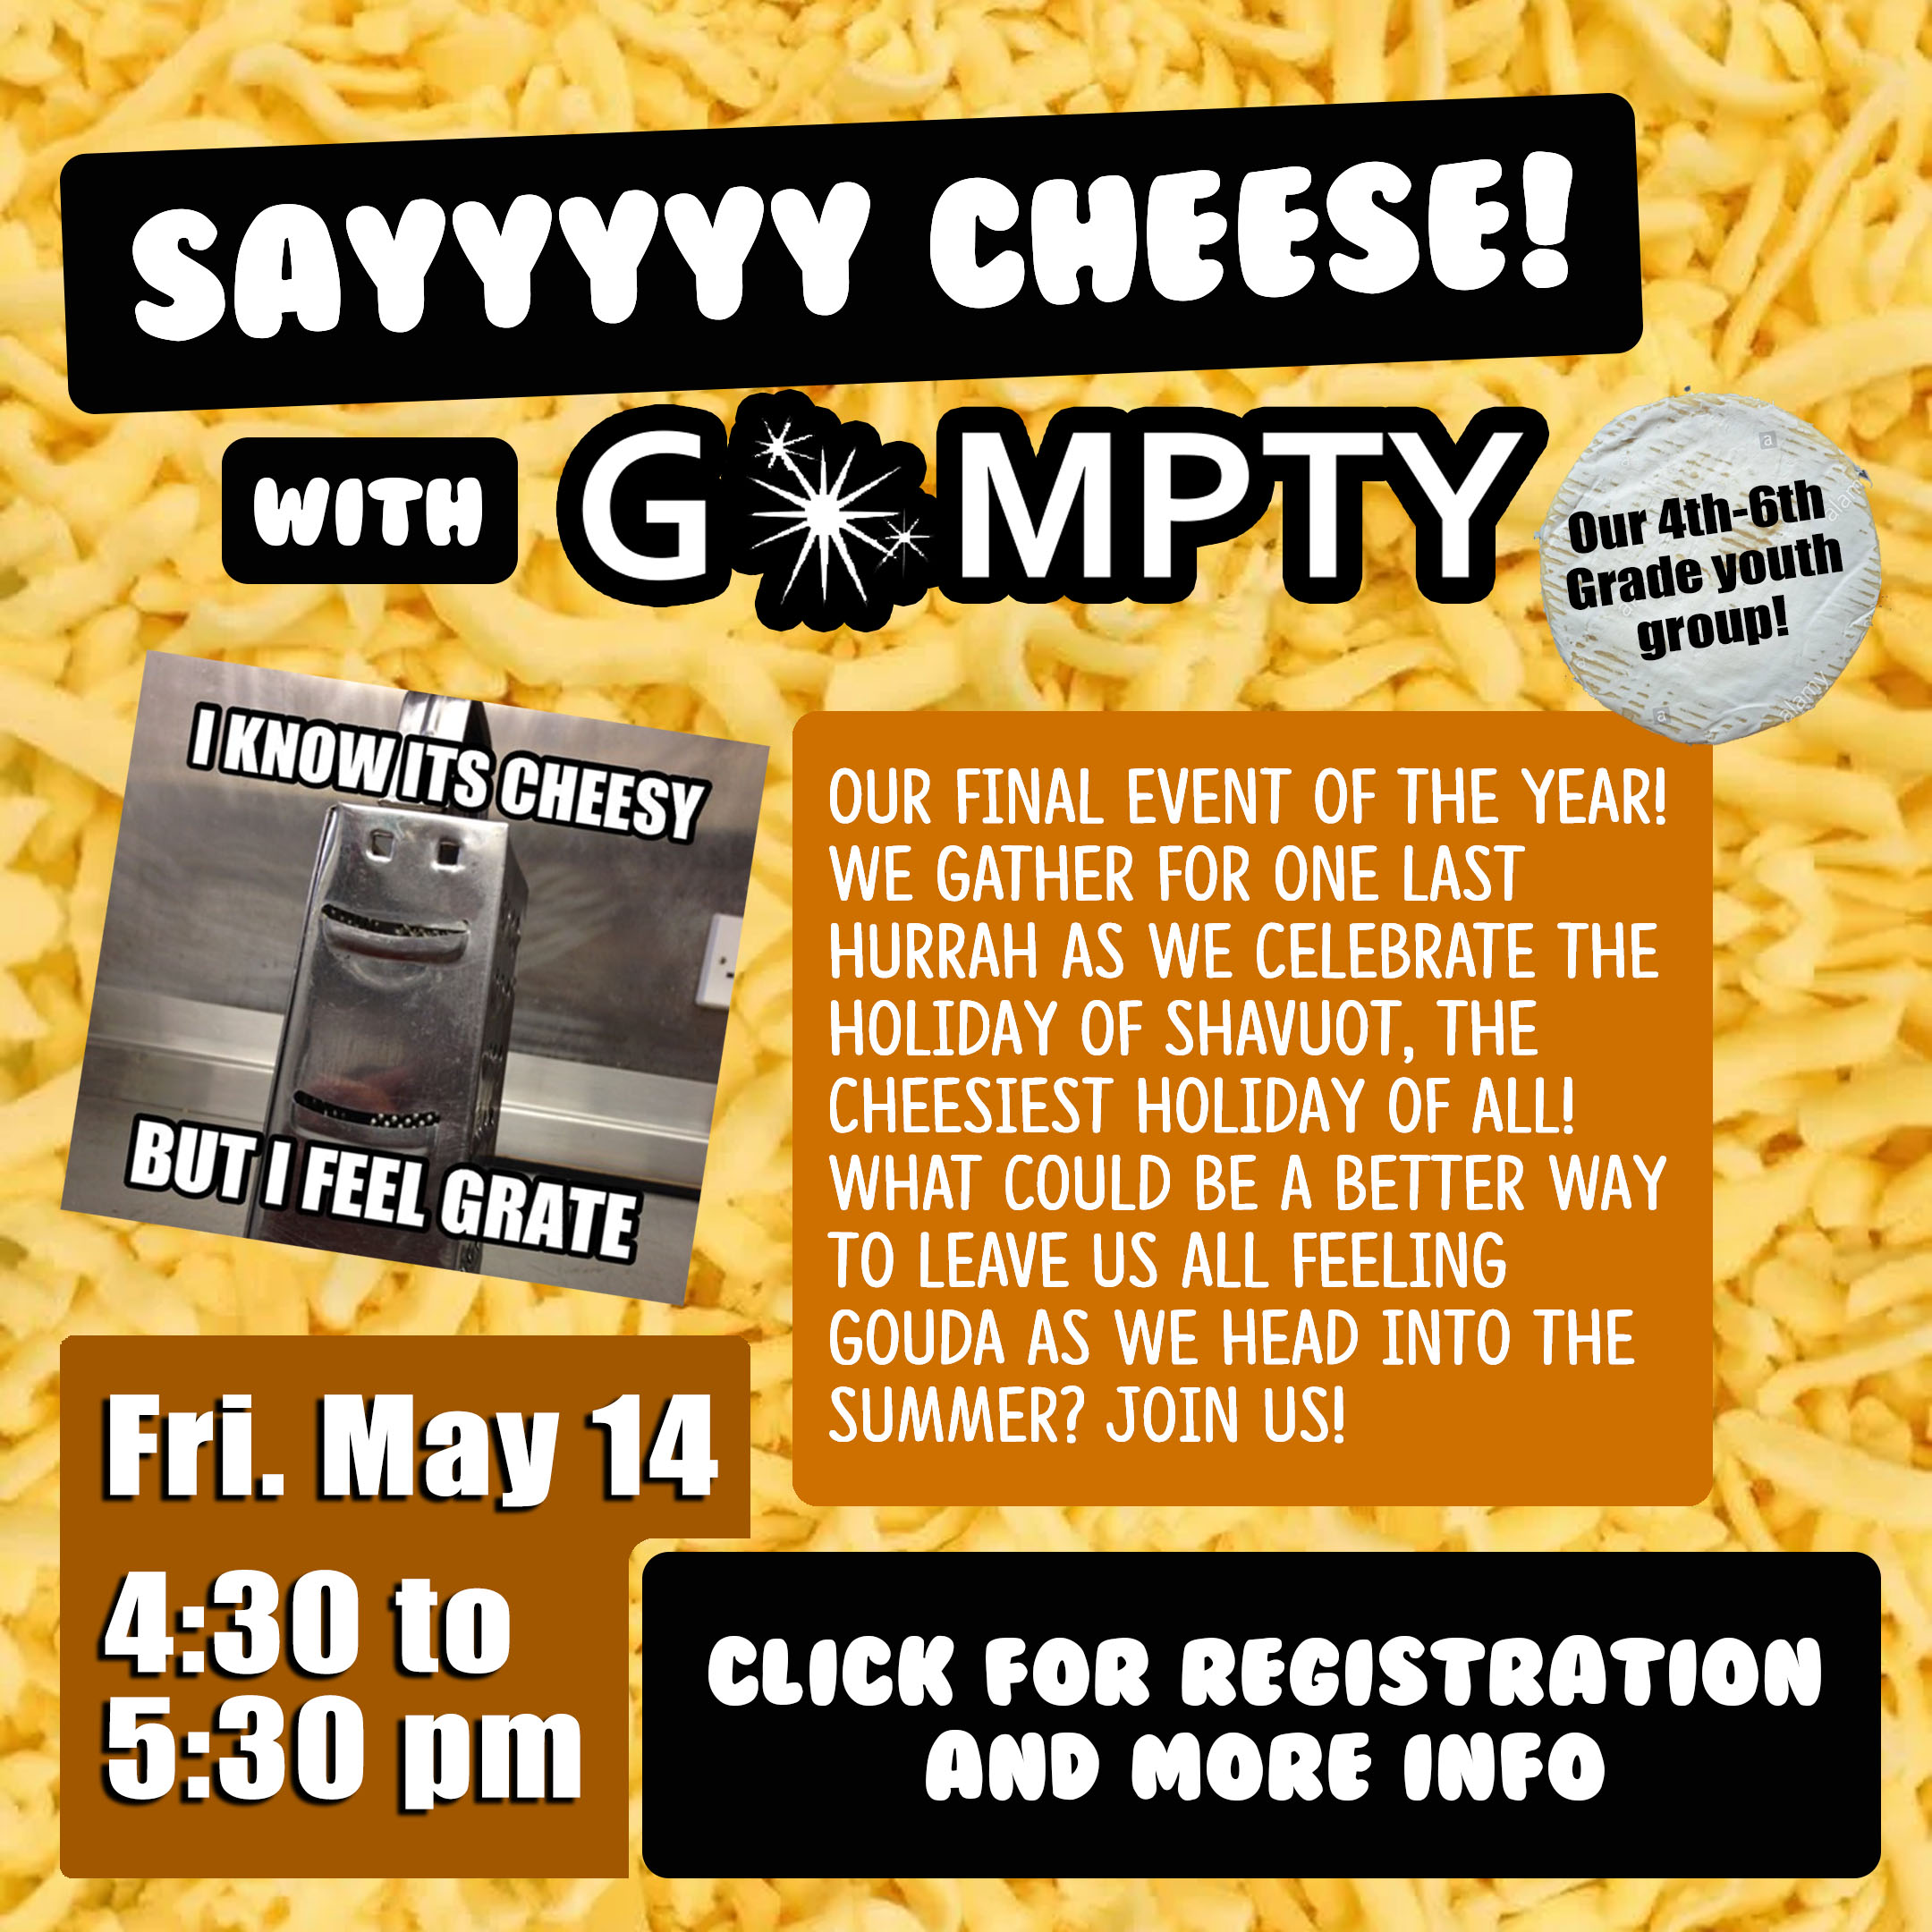 say cheese with GoMPTY with CLICK